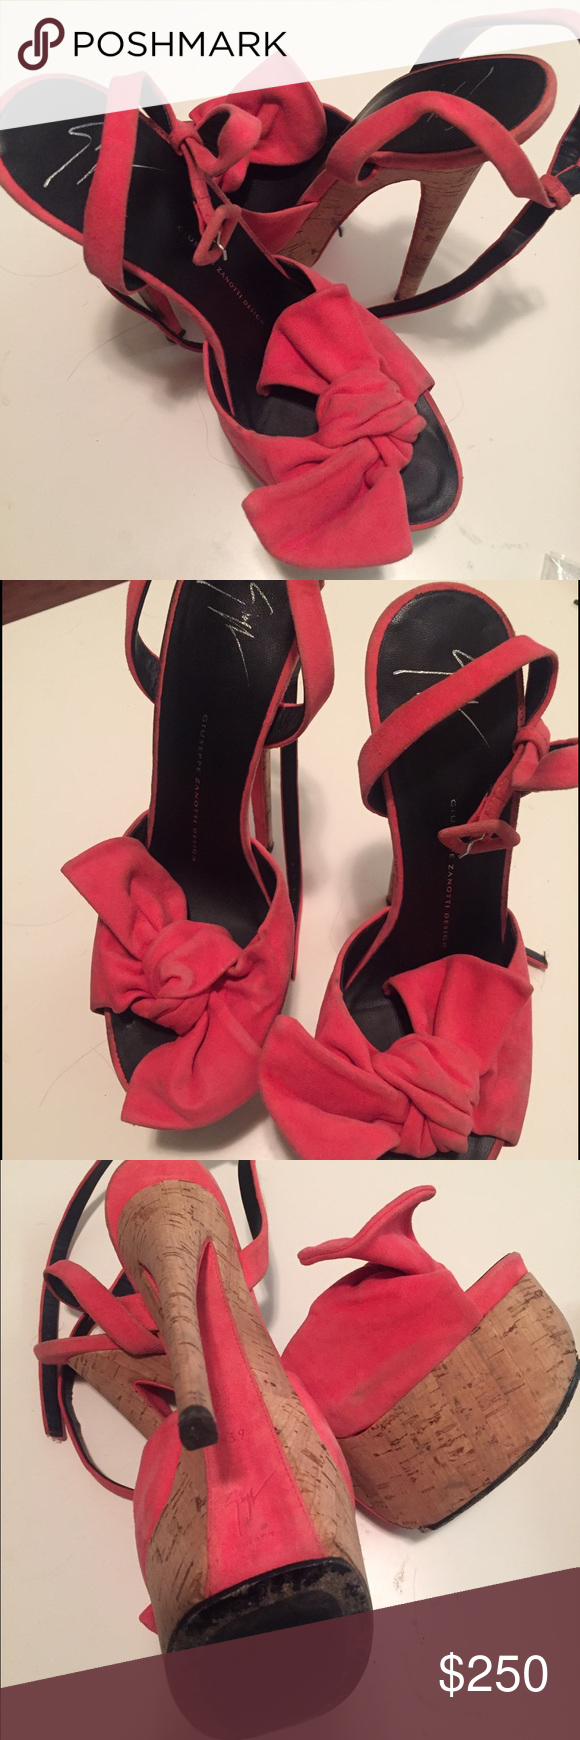 Giuseppe Zanotti Bow Sandals 39 Pre owned. Does not include box/dust bag Giuseppe Zanotti Shoes Heels